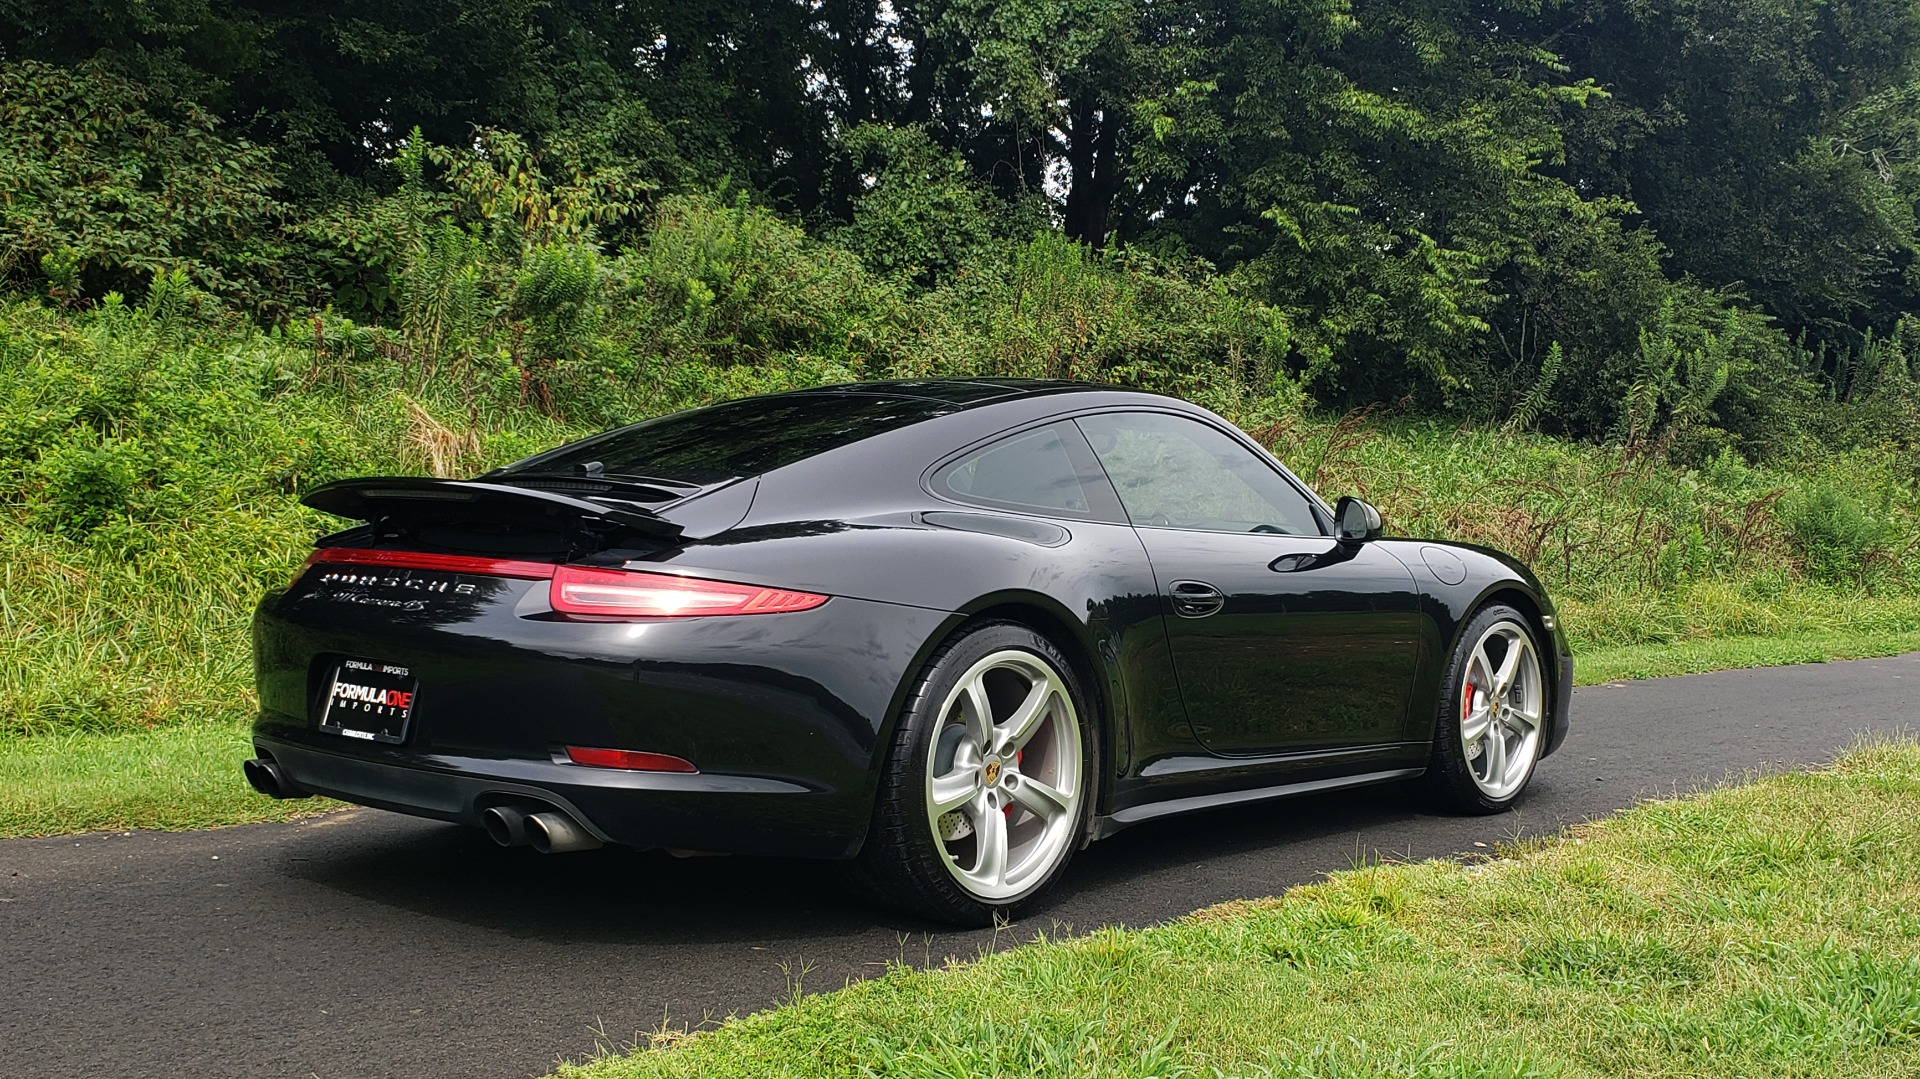 Used 2014 Porsche 911 CARRERA 4S / AWD / 3.8L / PDK / CHRONO / NAV / BOSE / SUNROOF for sale Sold at Formula Imports in Charlotte NC 28227 9